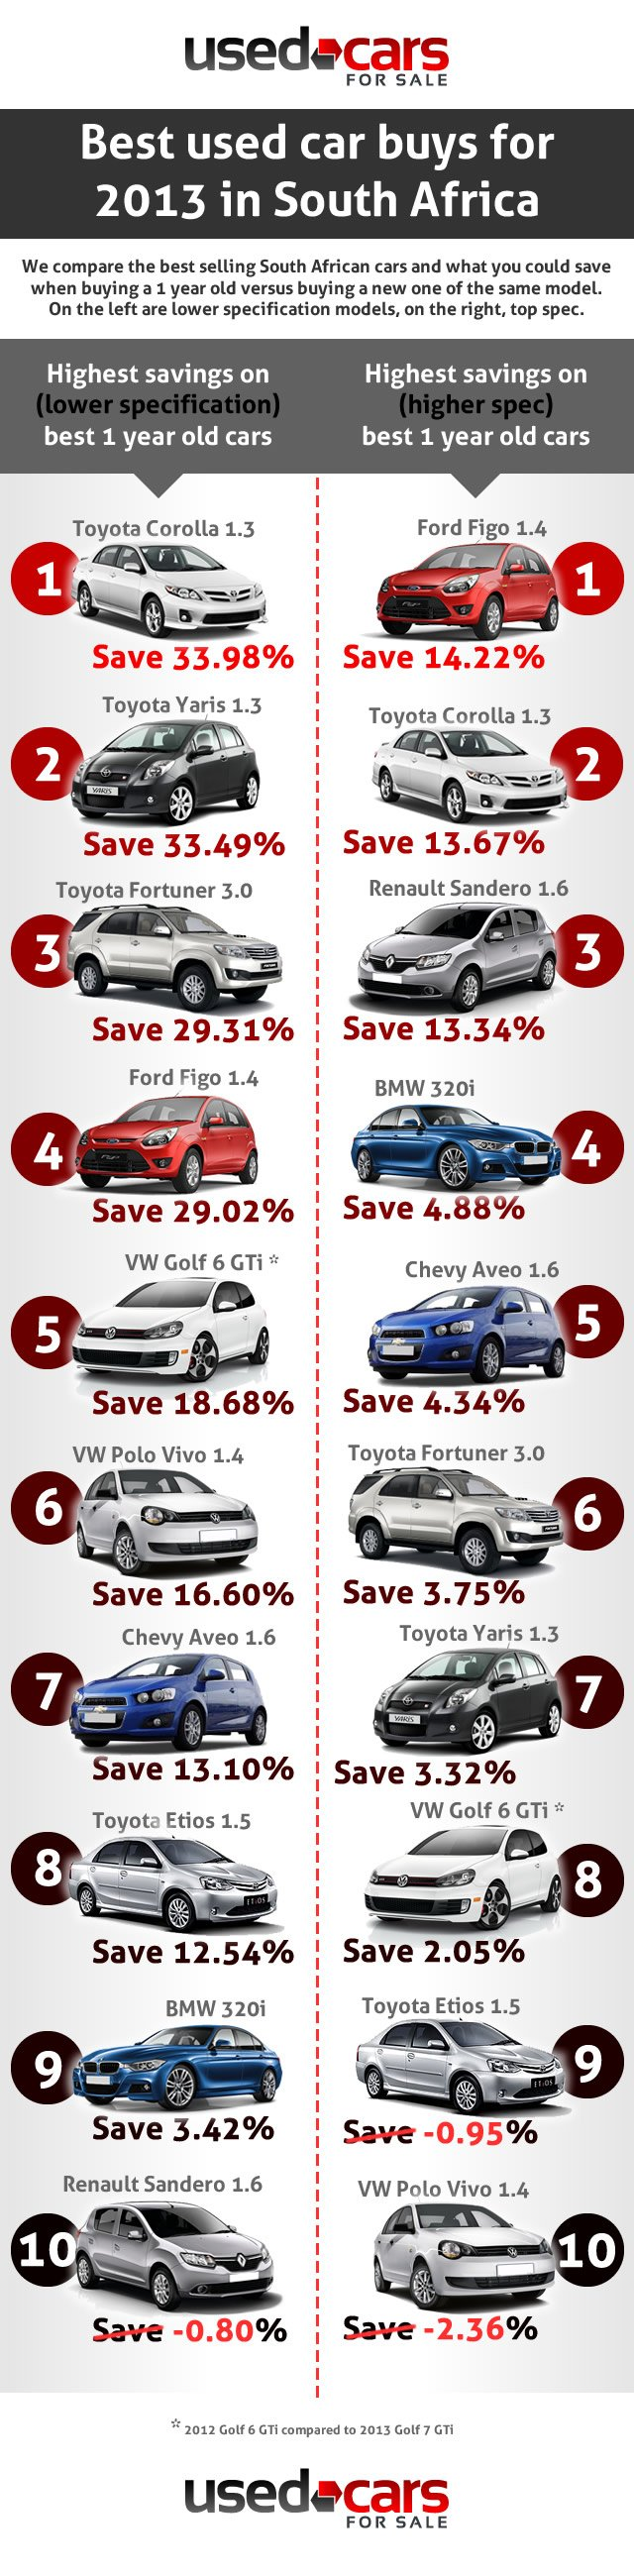 Top 10 Best Used Car Buys in 2013 for South Africans ...